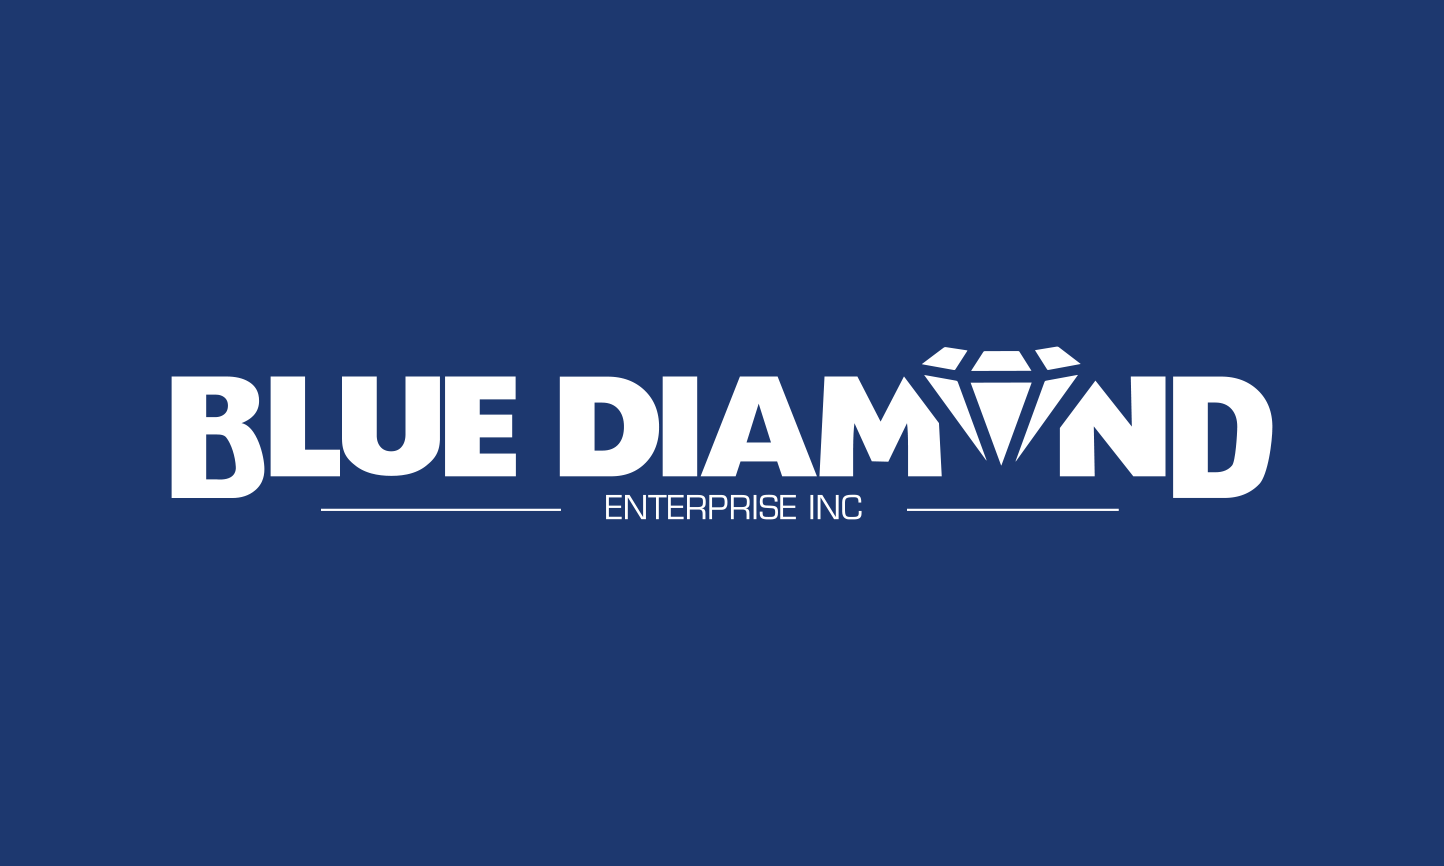 Blue Diamond Enterprise Branding